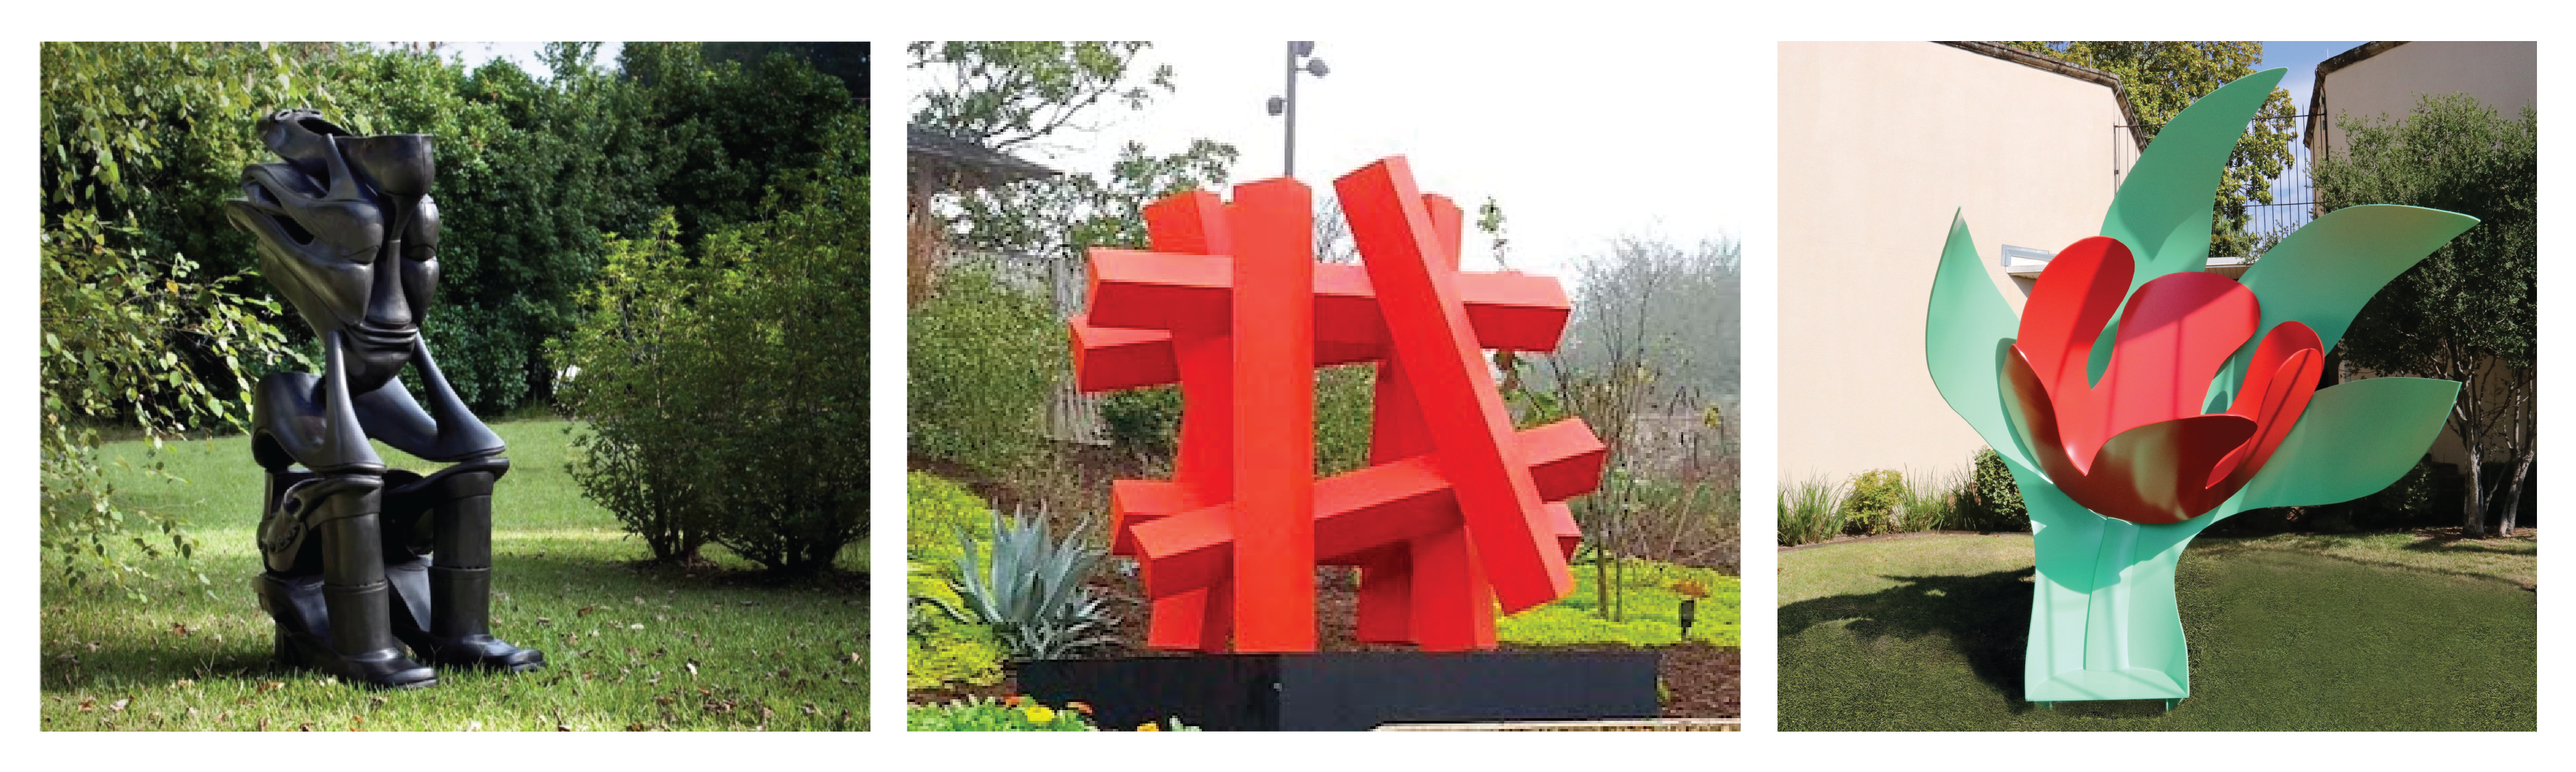 McNay Art Museum Acquires Three New Outdoor Sculptures For Its World-Renowned Permanent Collection